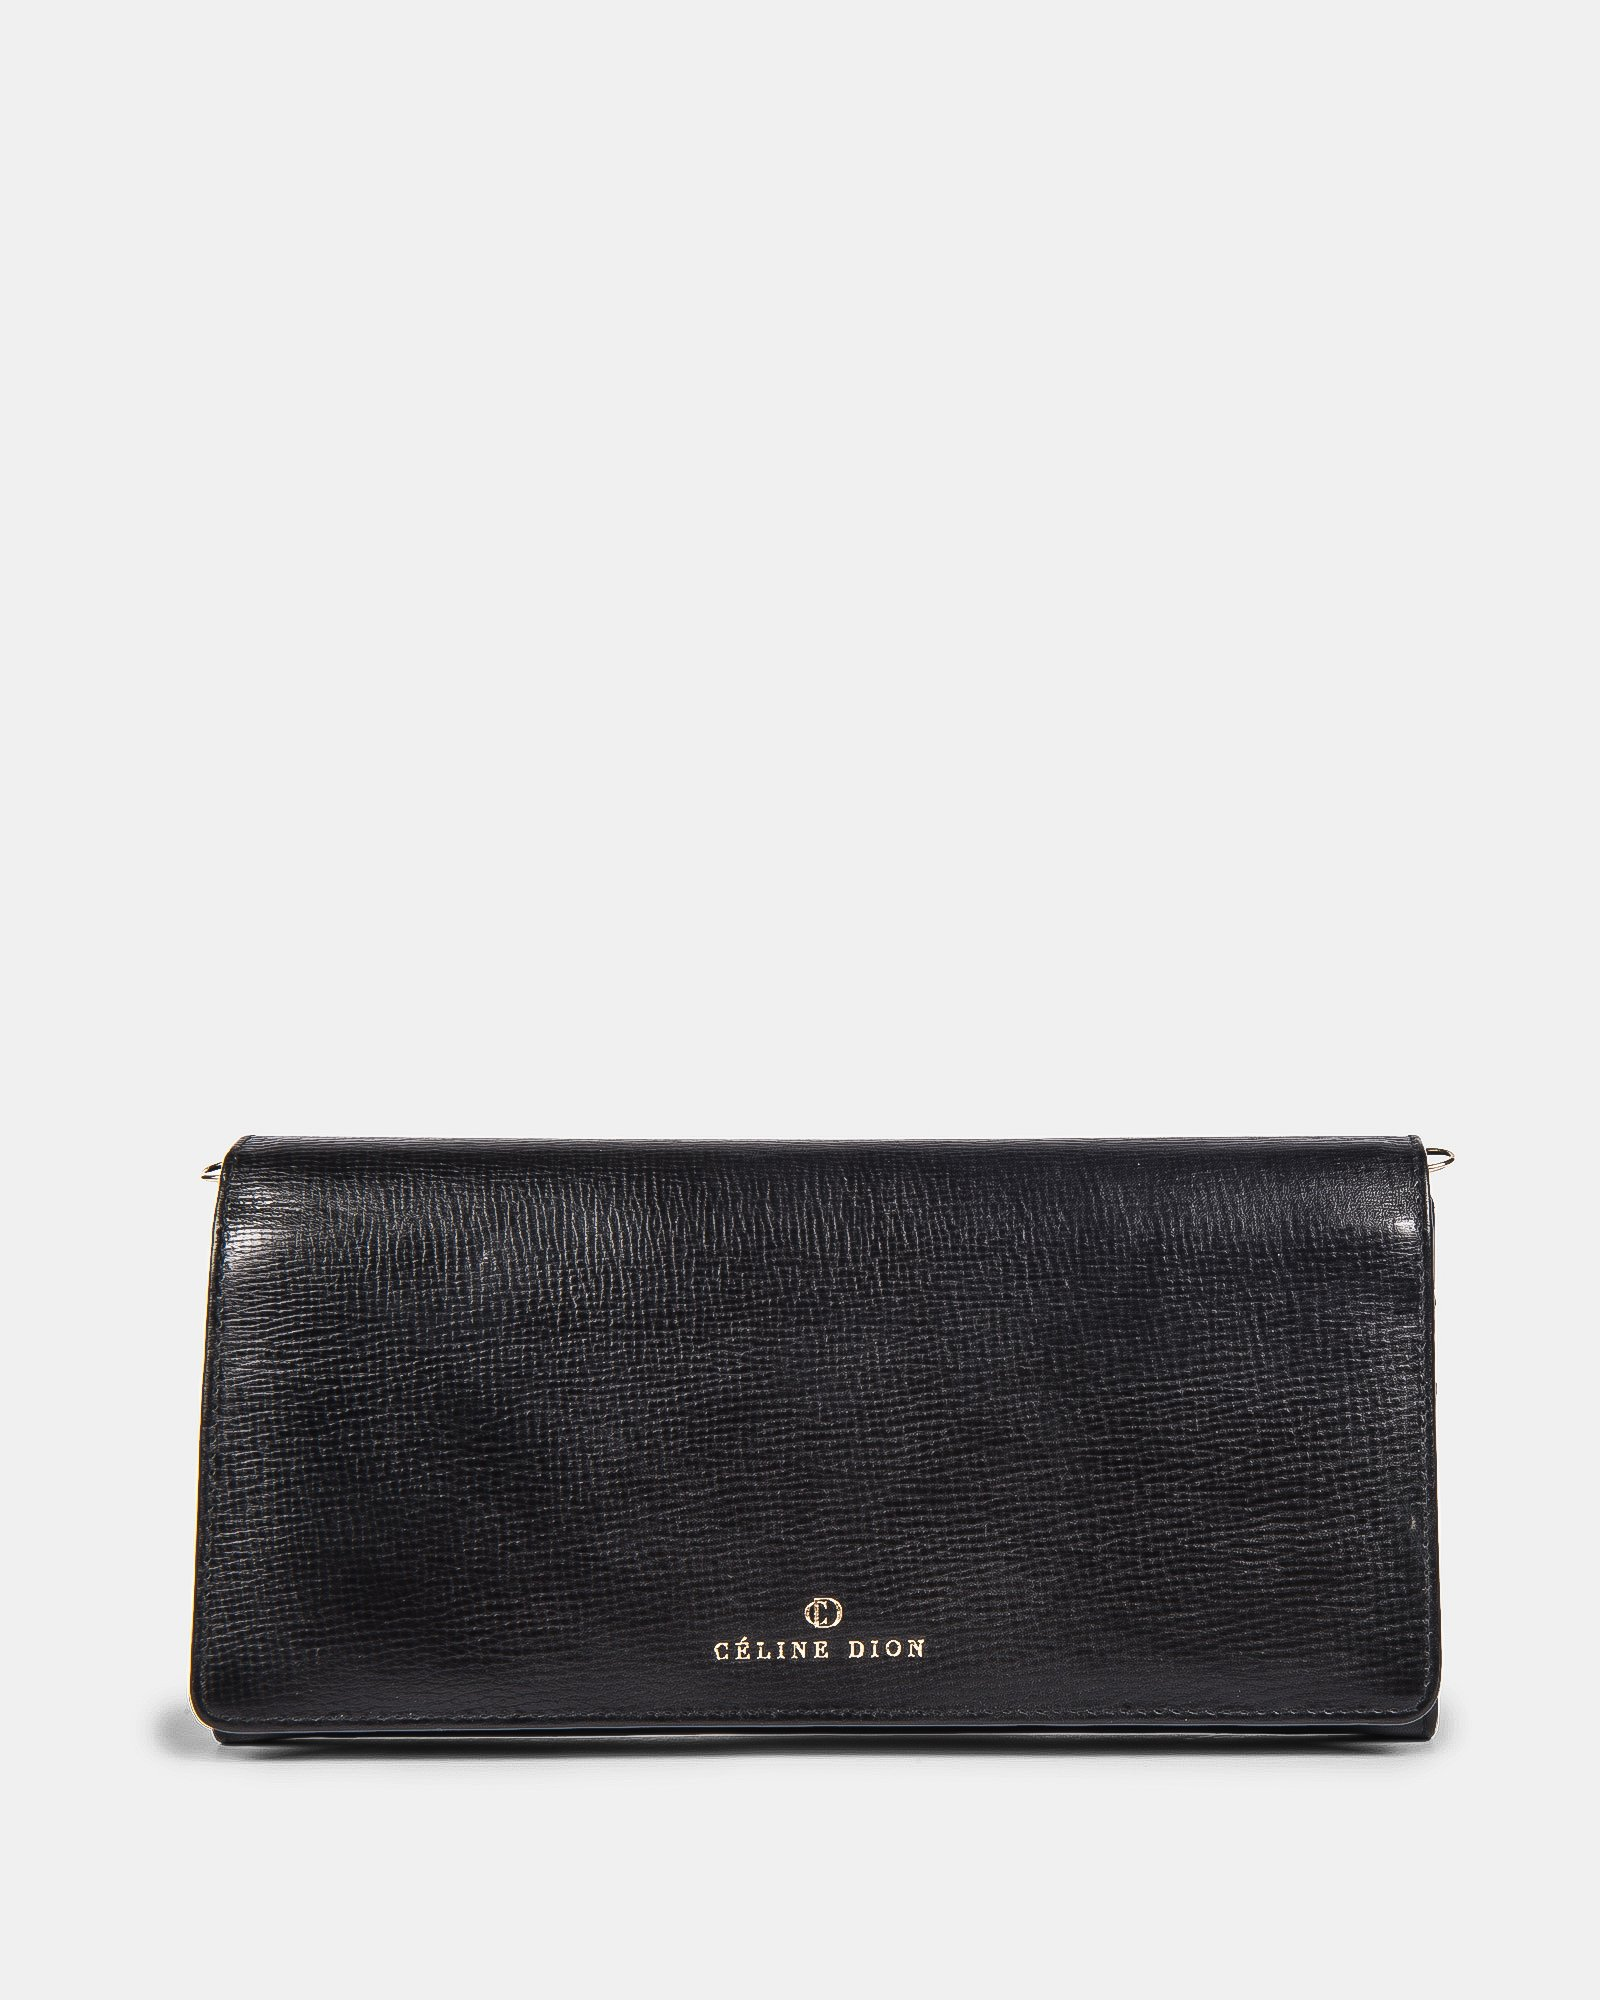 CAVATINA - 2 in 1 Wallet & Crossbody with interior back wall zipper - Black - Céline Dion - Zoom